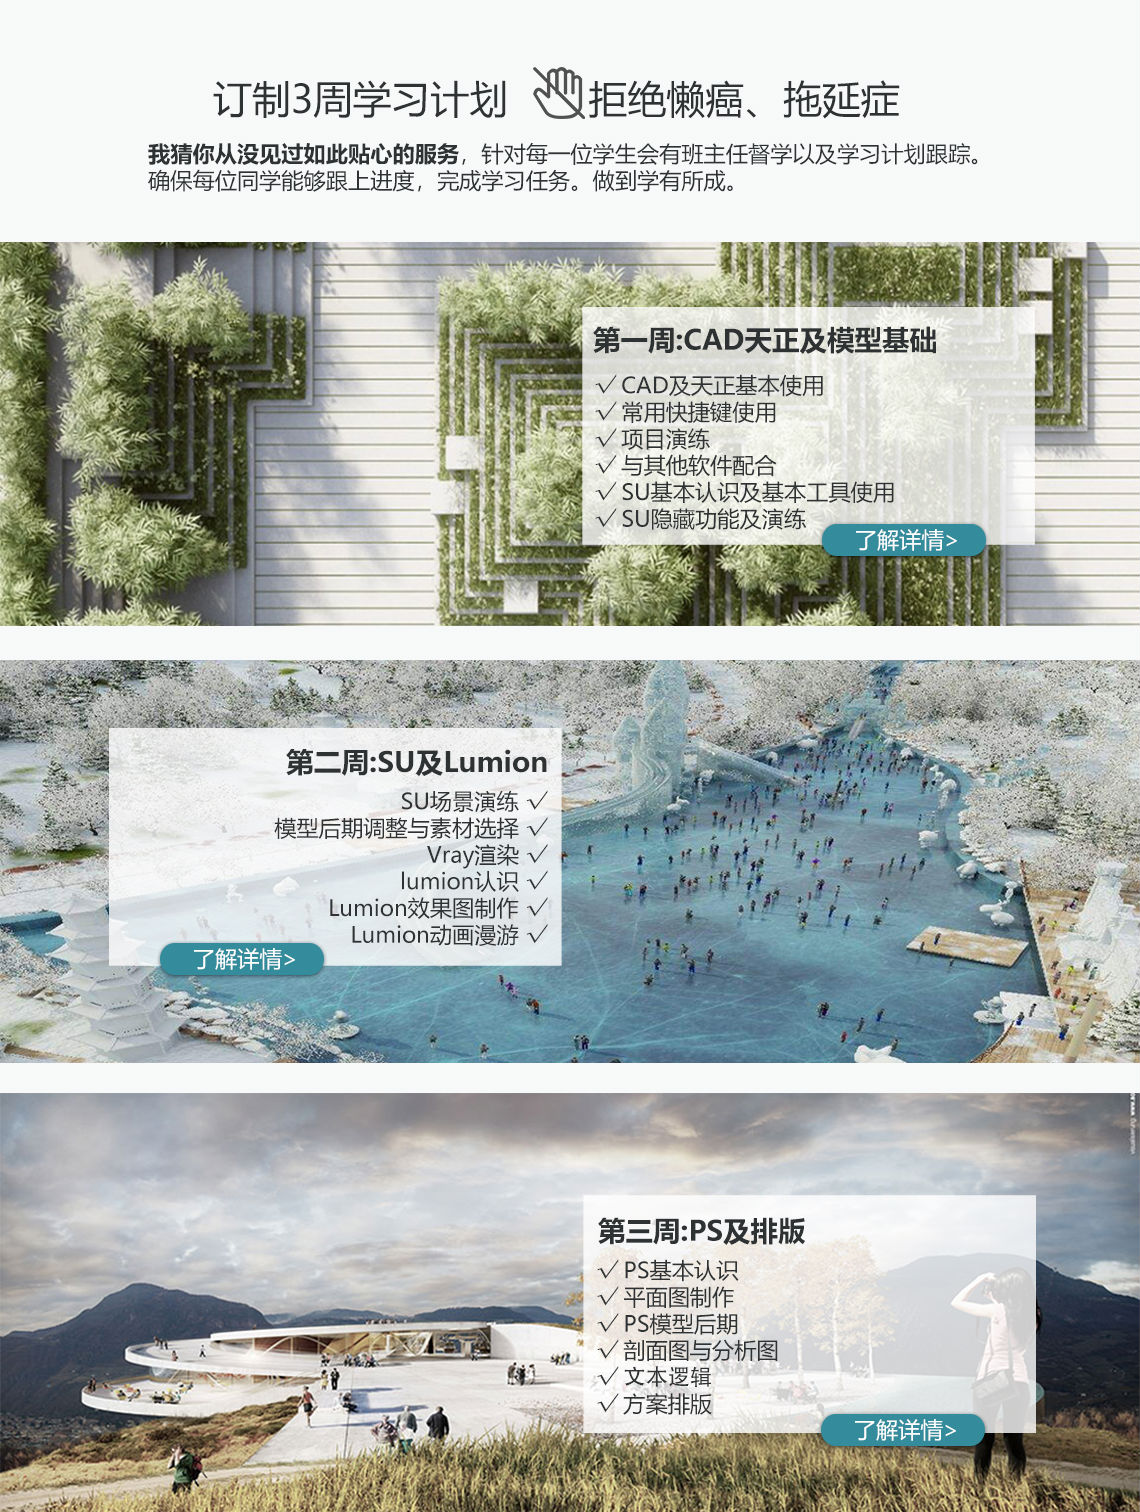 景观设计软件培训,课程涵盖:AutoCAD、天正建筑、Lumion、Photoshop、Sketchup、Adobe Illustrator、Vray3.4